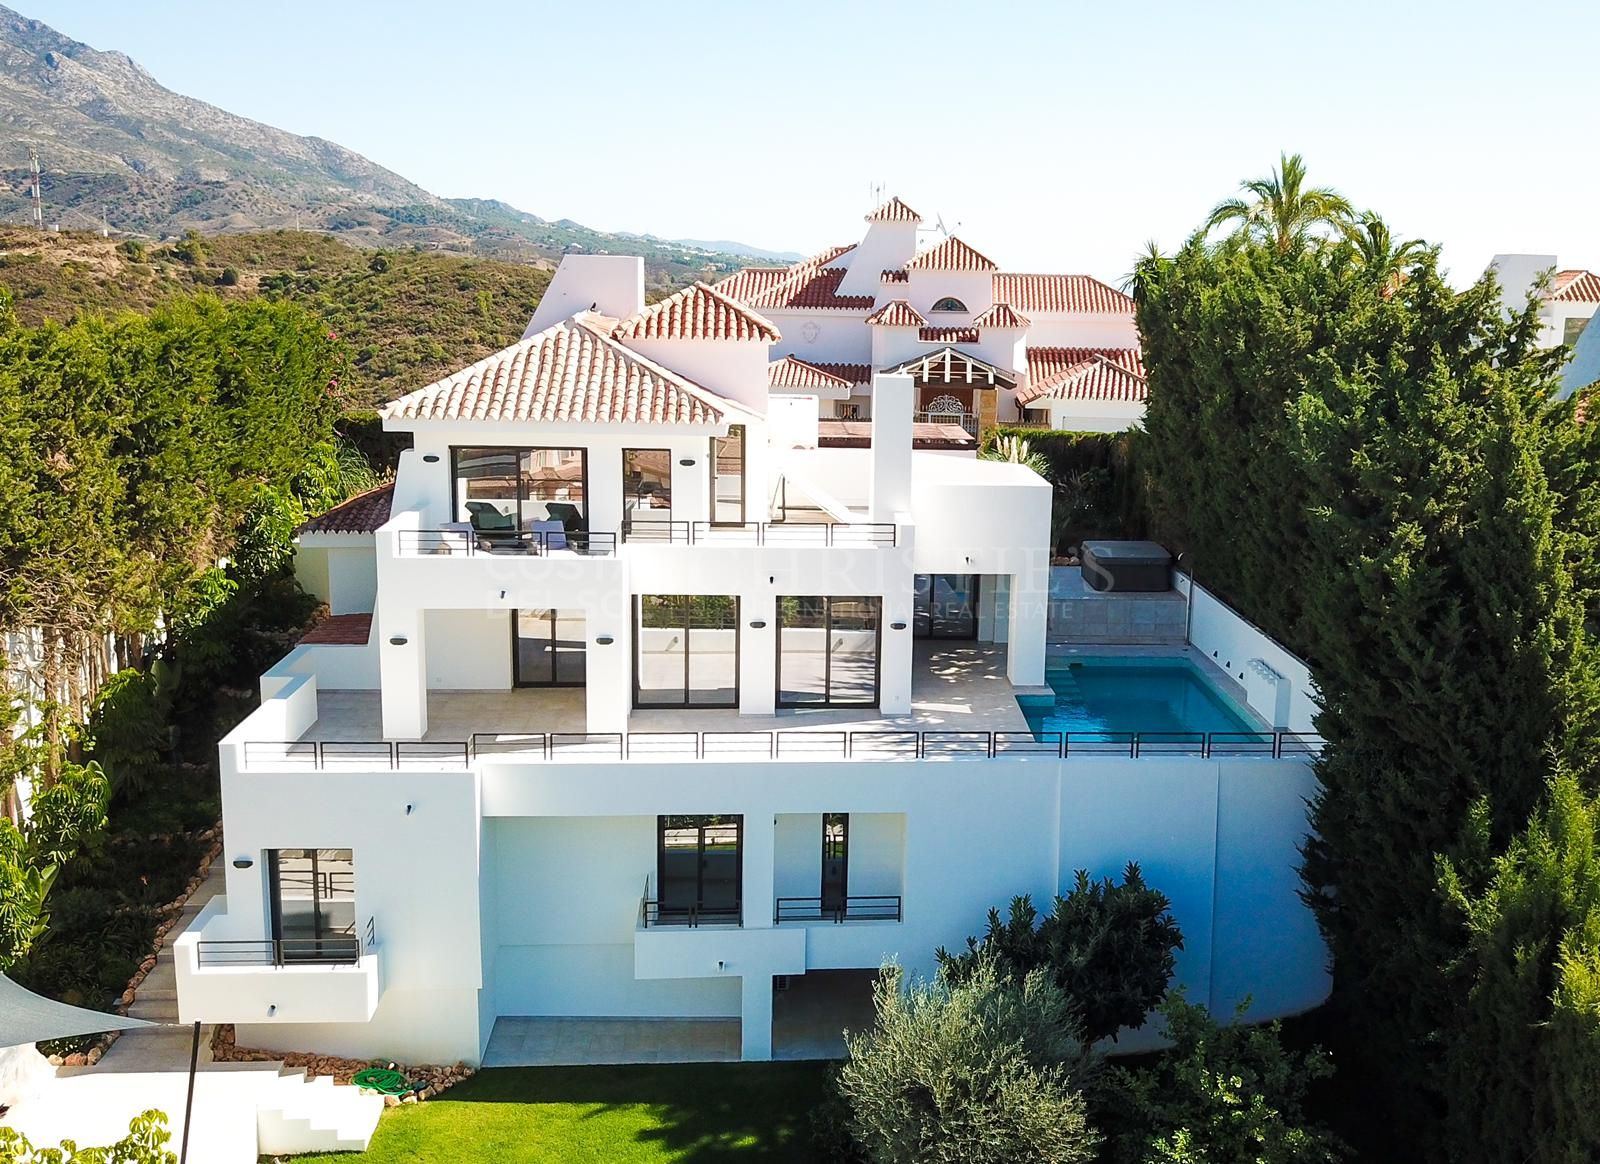 Private villa in Las Lomas de Nueva Andalucía, Marbella | Christie's International Real Estate